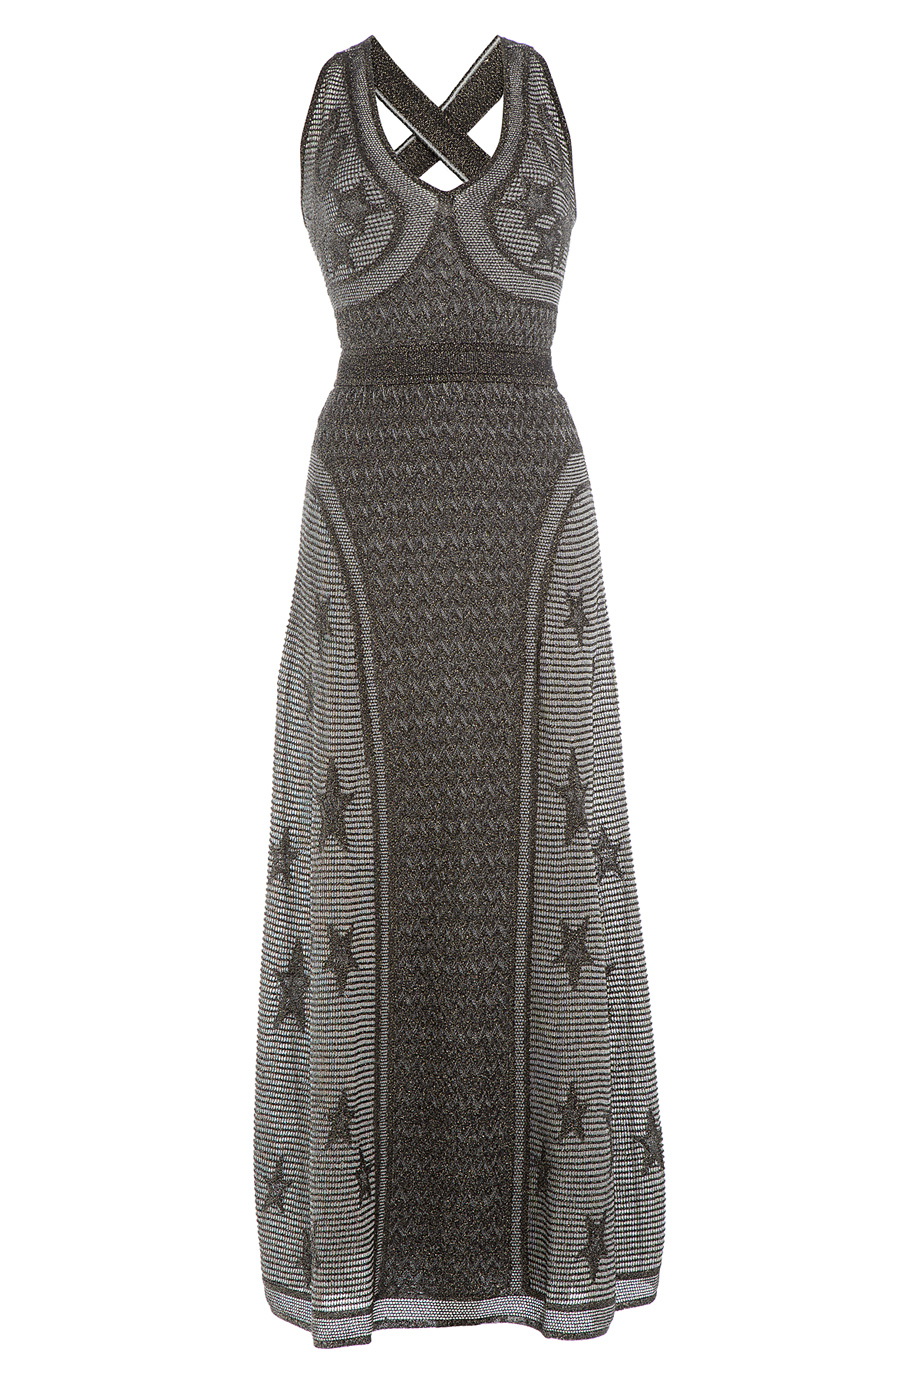 c70d108867b7 M Missoni Crochet Knit Maxi Dress With Metallic Thread In Multicolored